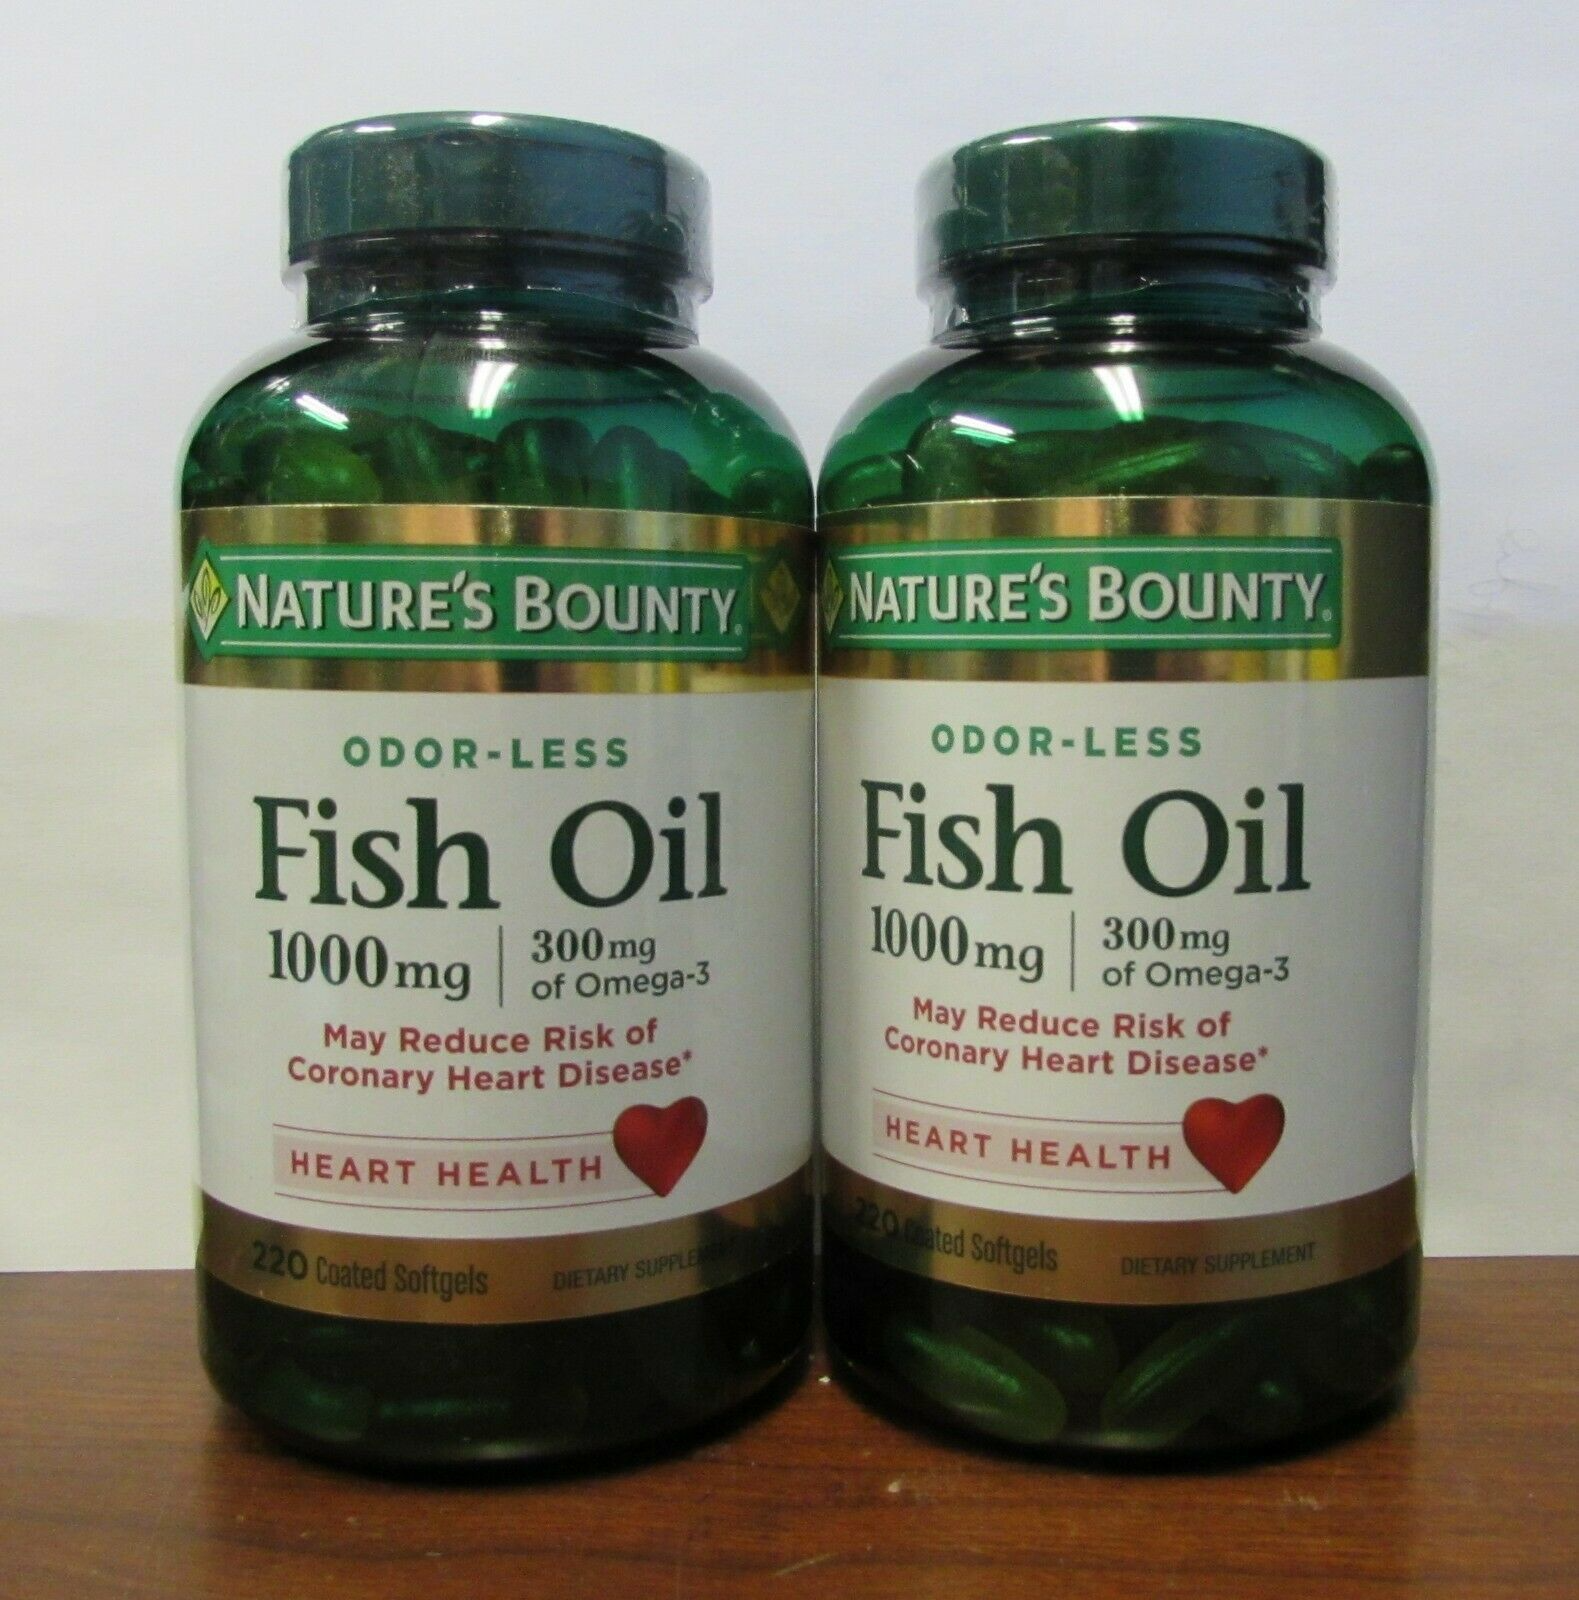 NATURE'S BOUNTY ODORLESS FISH OIL 1,000 MG 220 SOFTGELS EA (2 PACK) EXP 11/2021 - $28.99